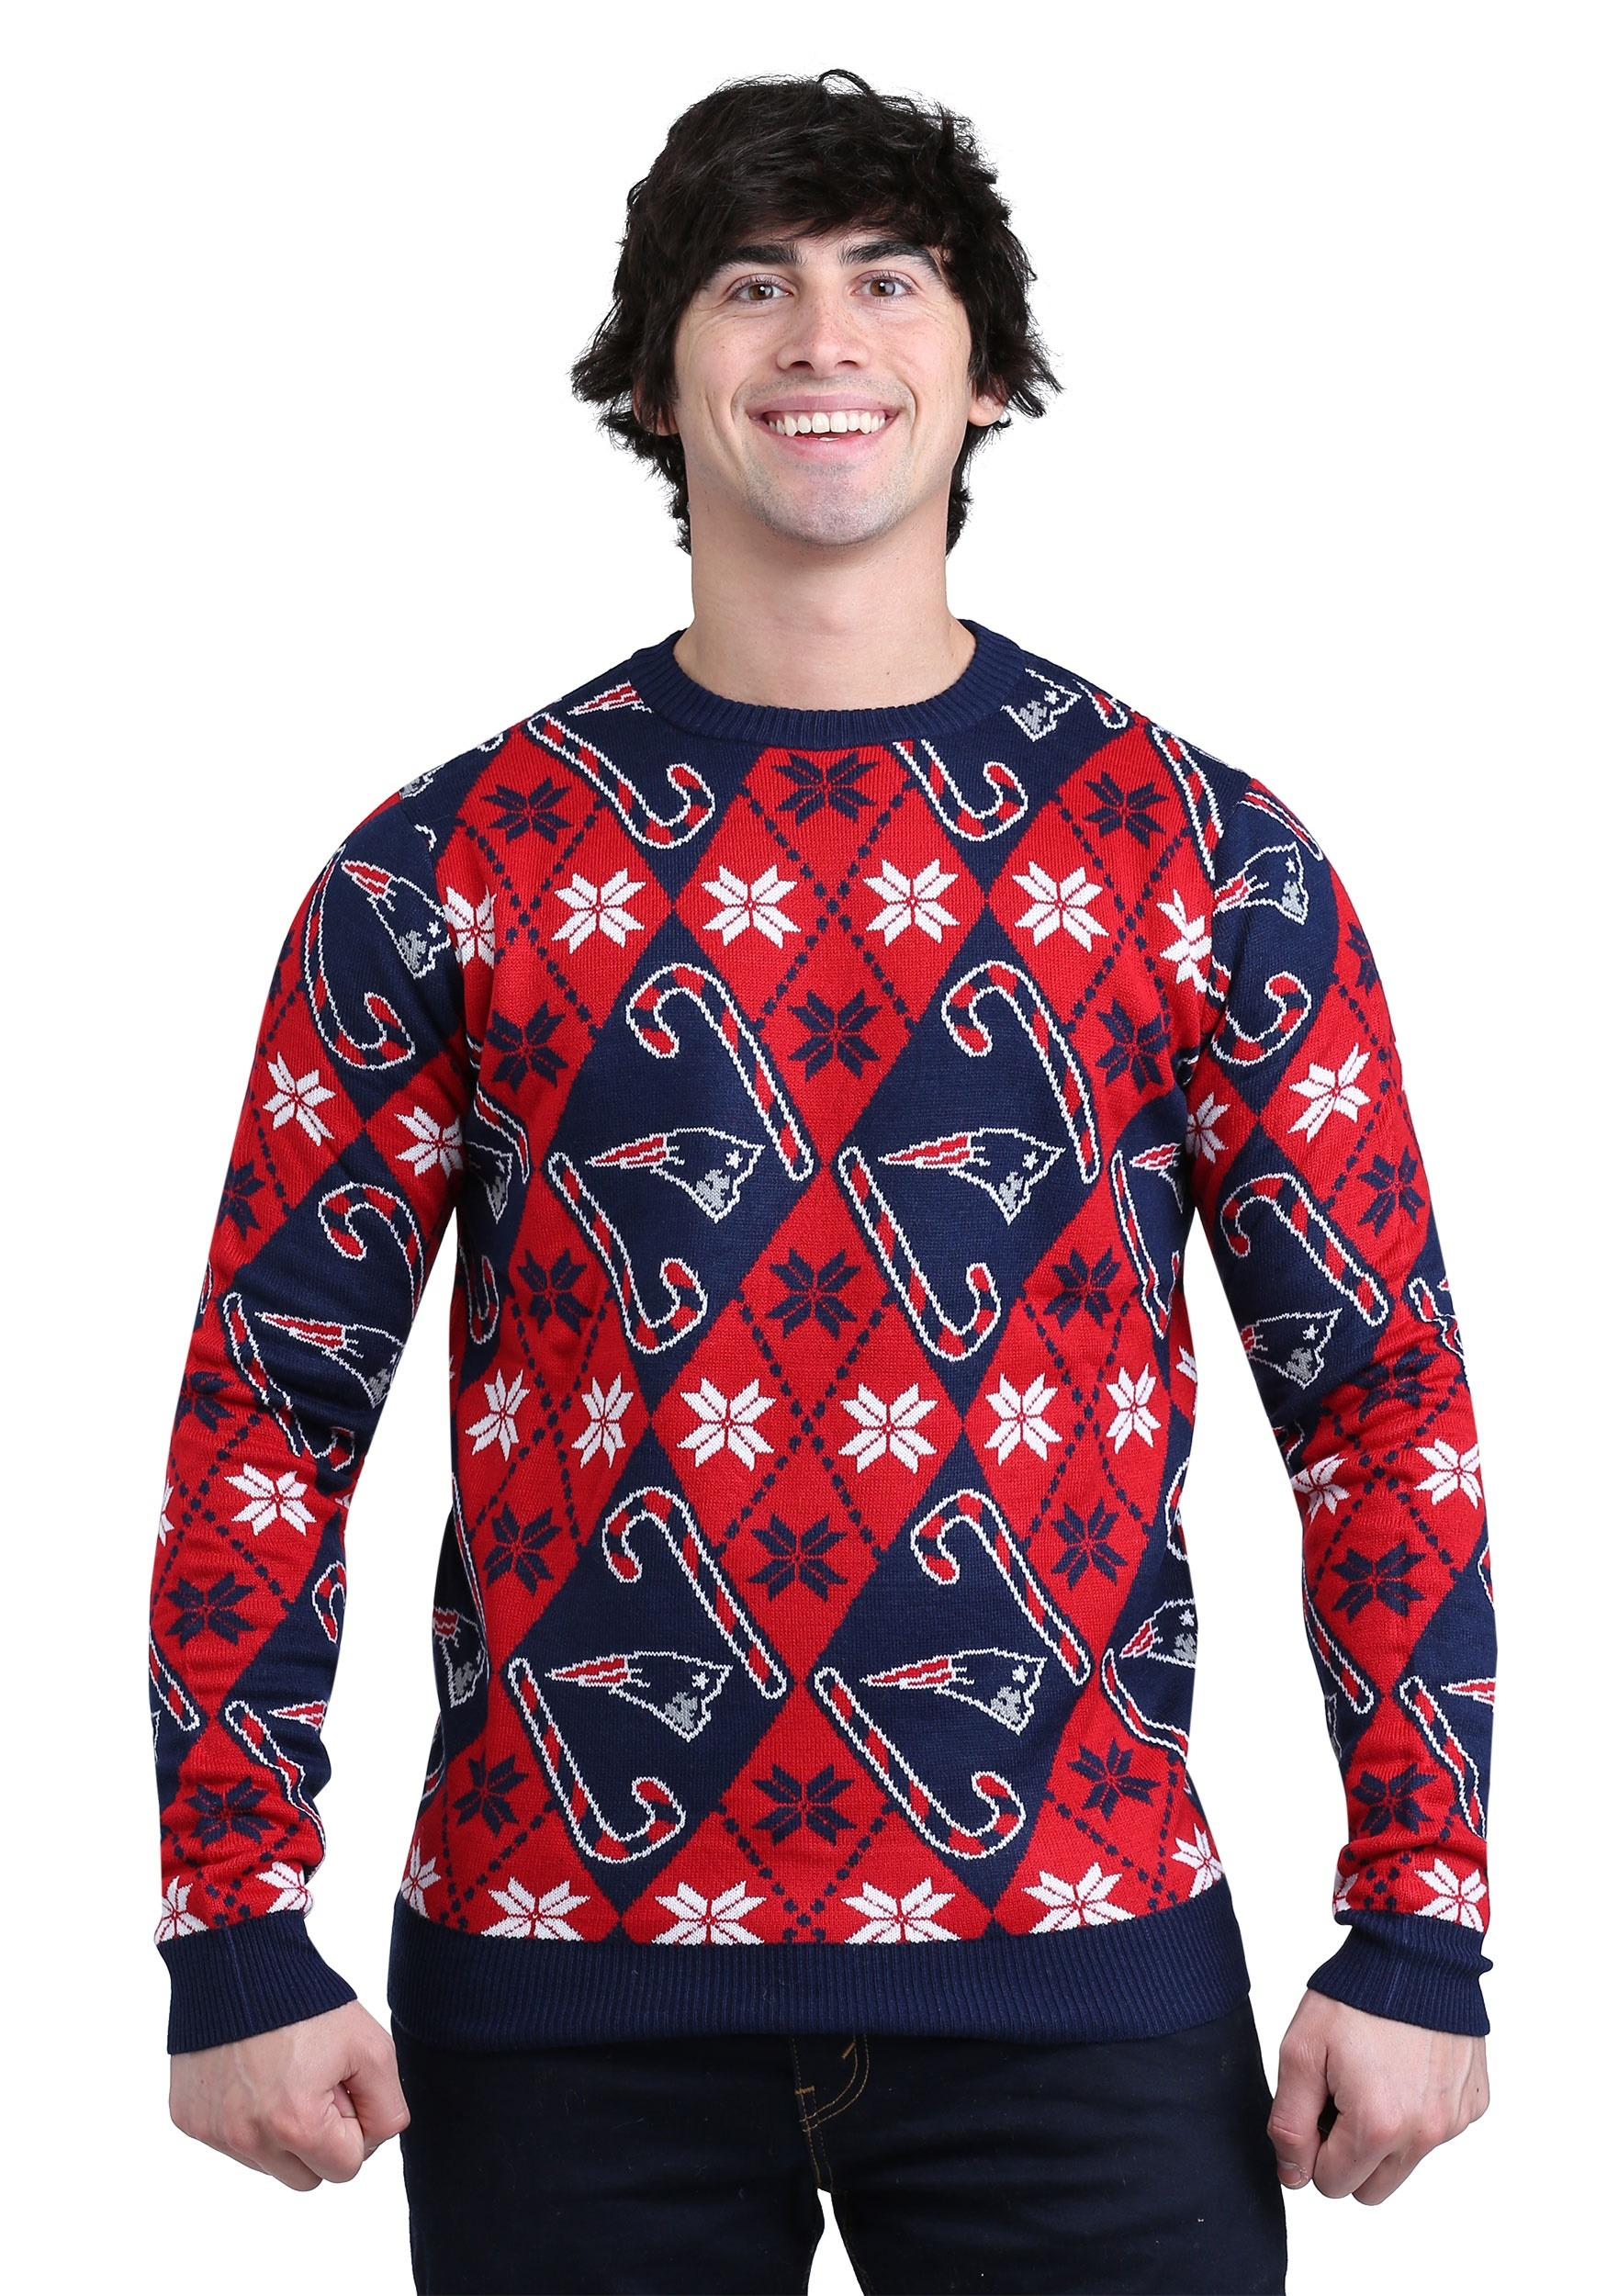 New England Patriots Candy Cane Ugly Christmas Sweater